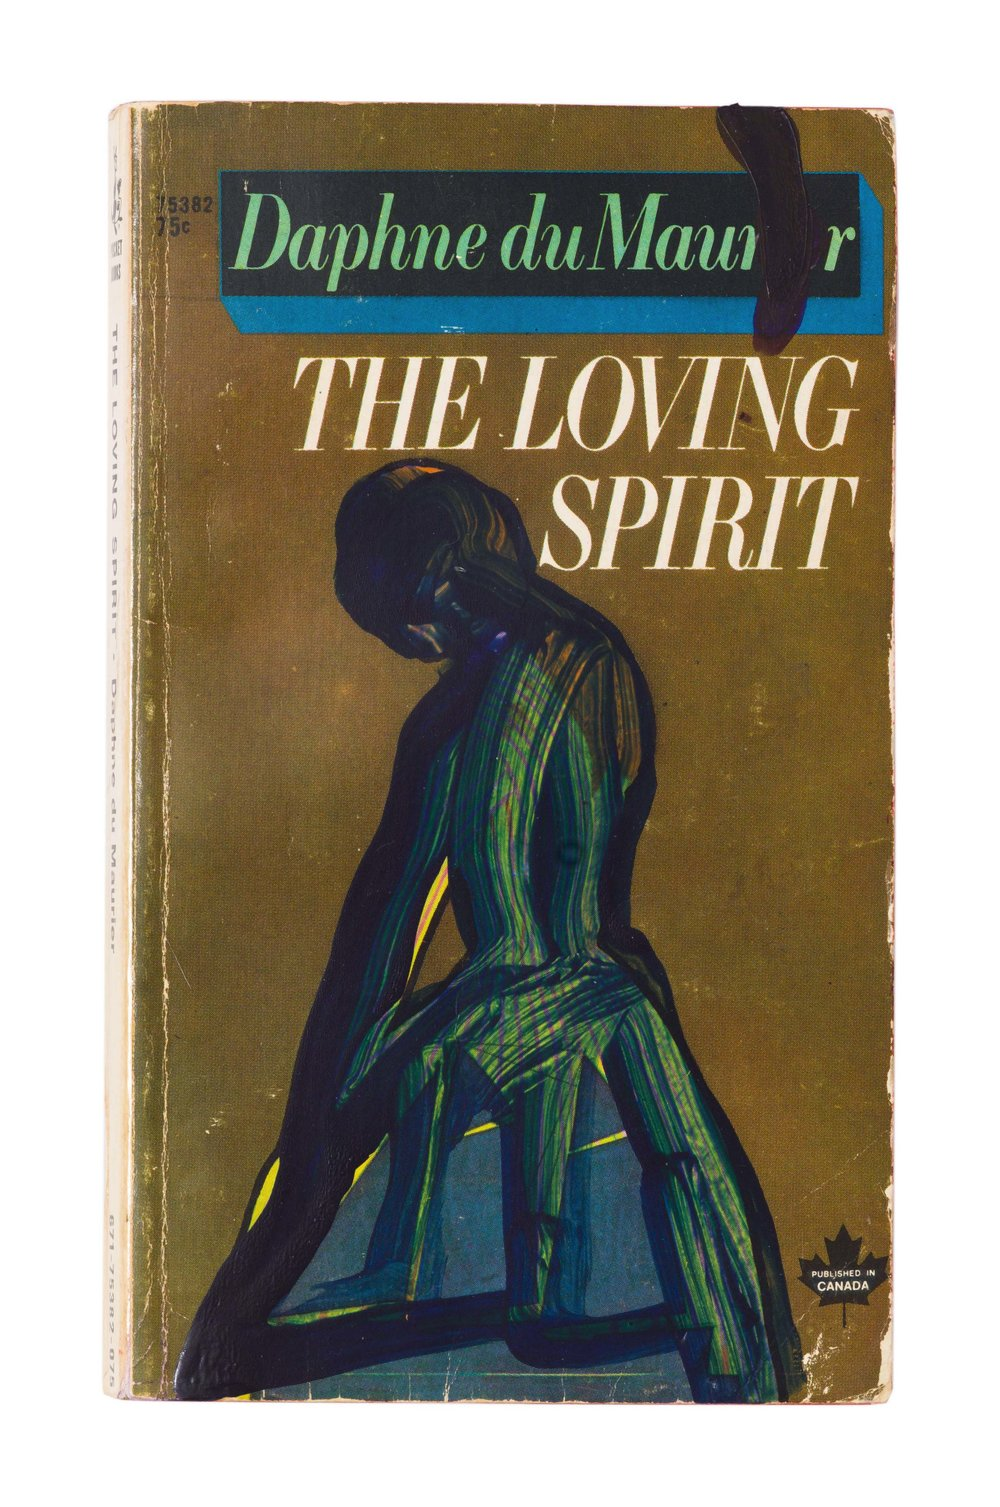 Drew Beattie and Ben Shepard  The Loving Spirit  acrylic on used book 2016 7 x 4 ¼ inches